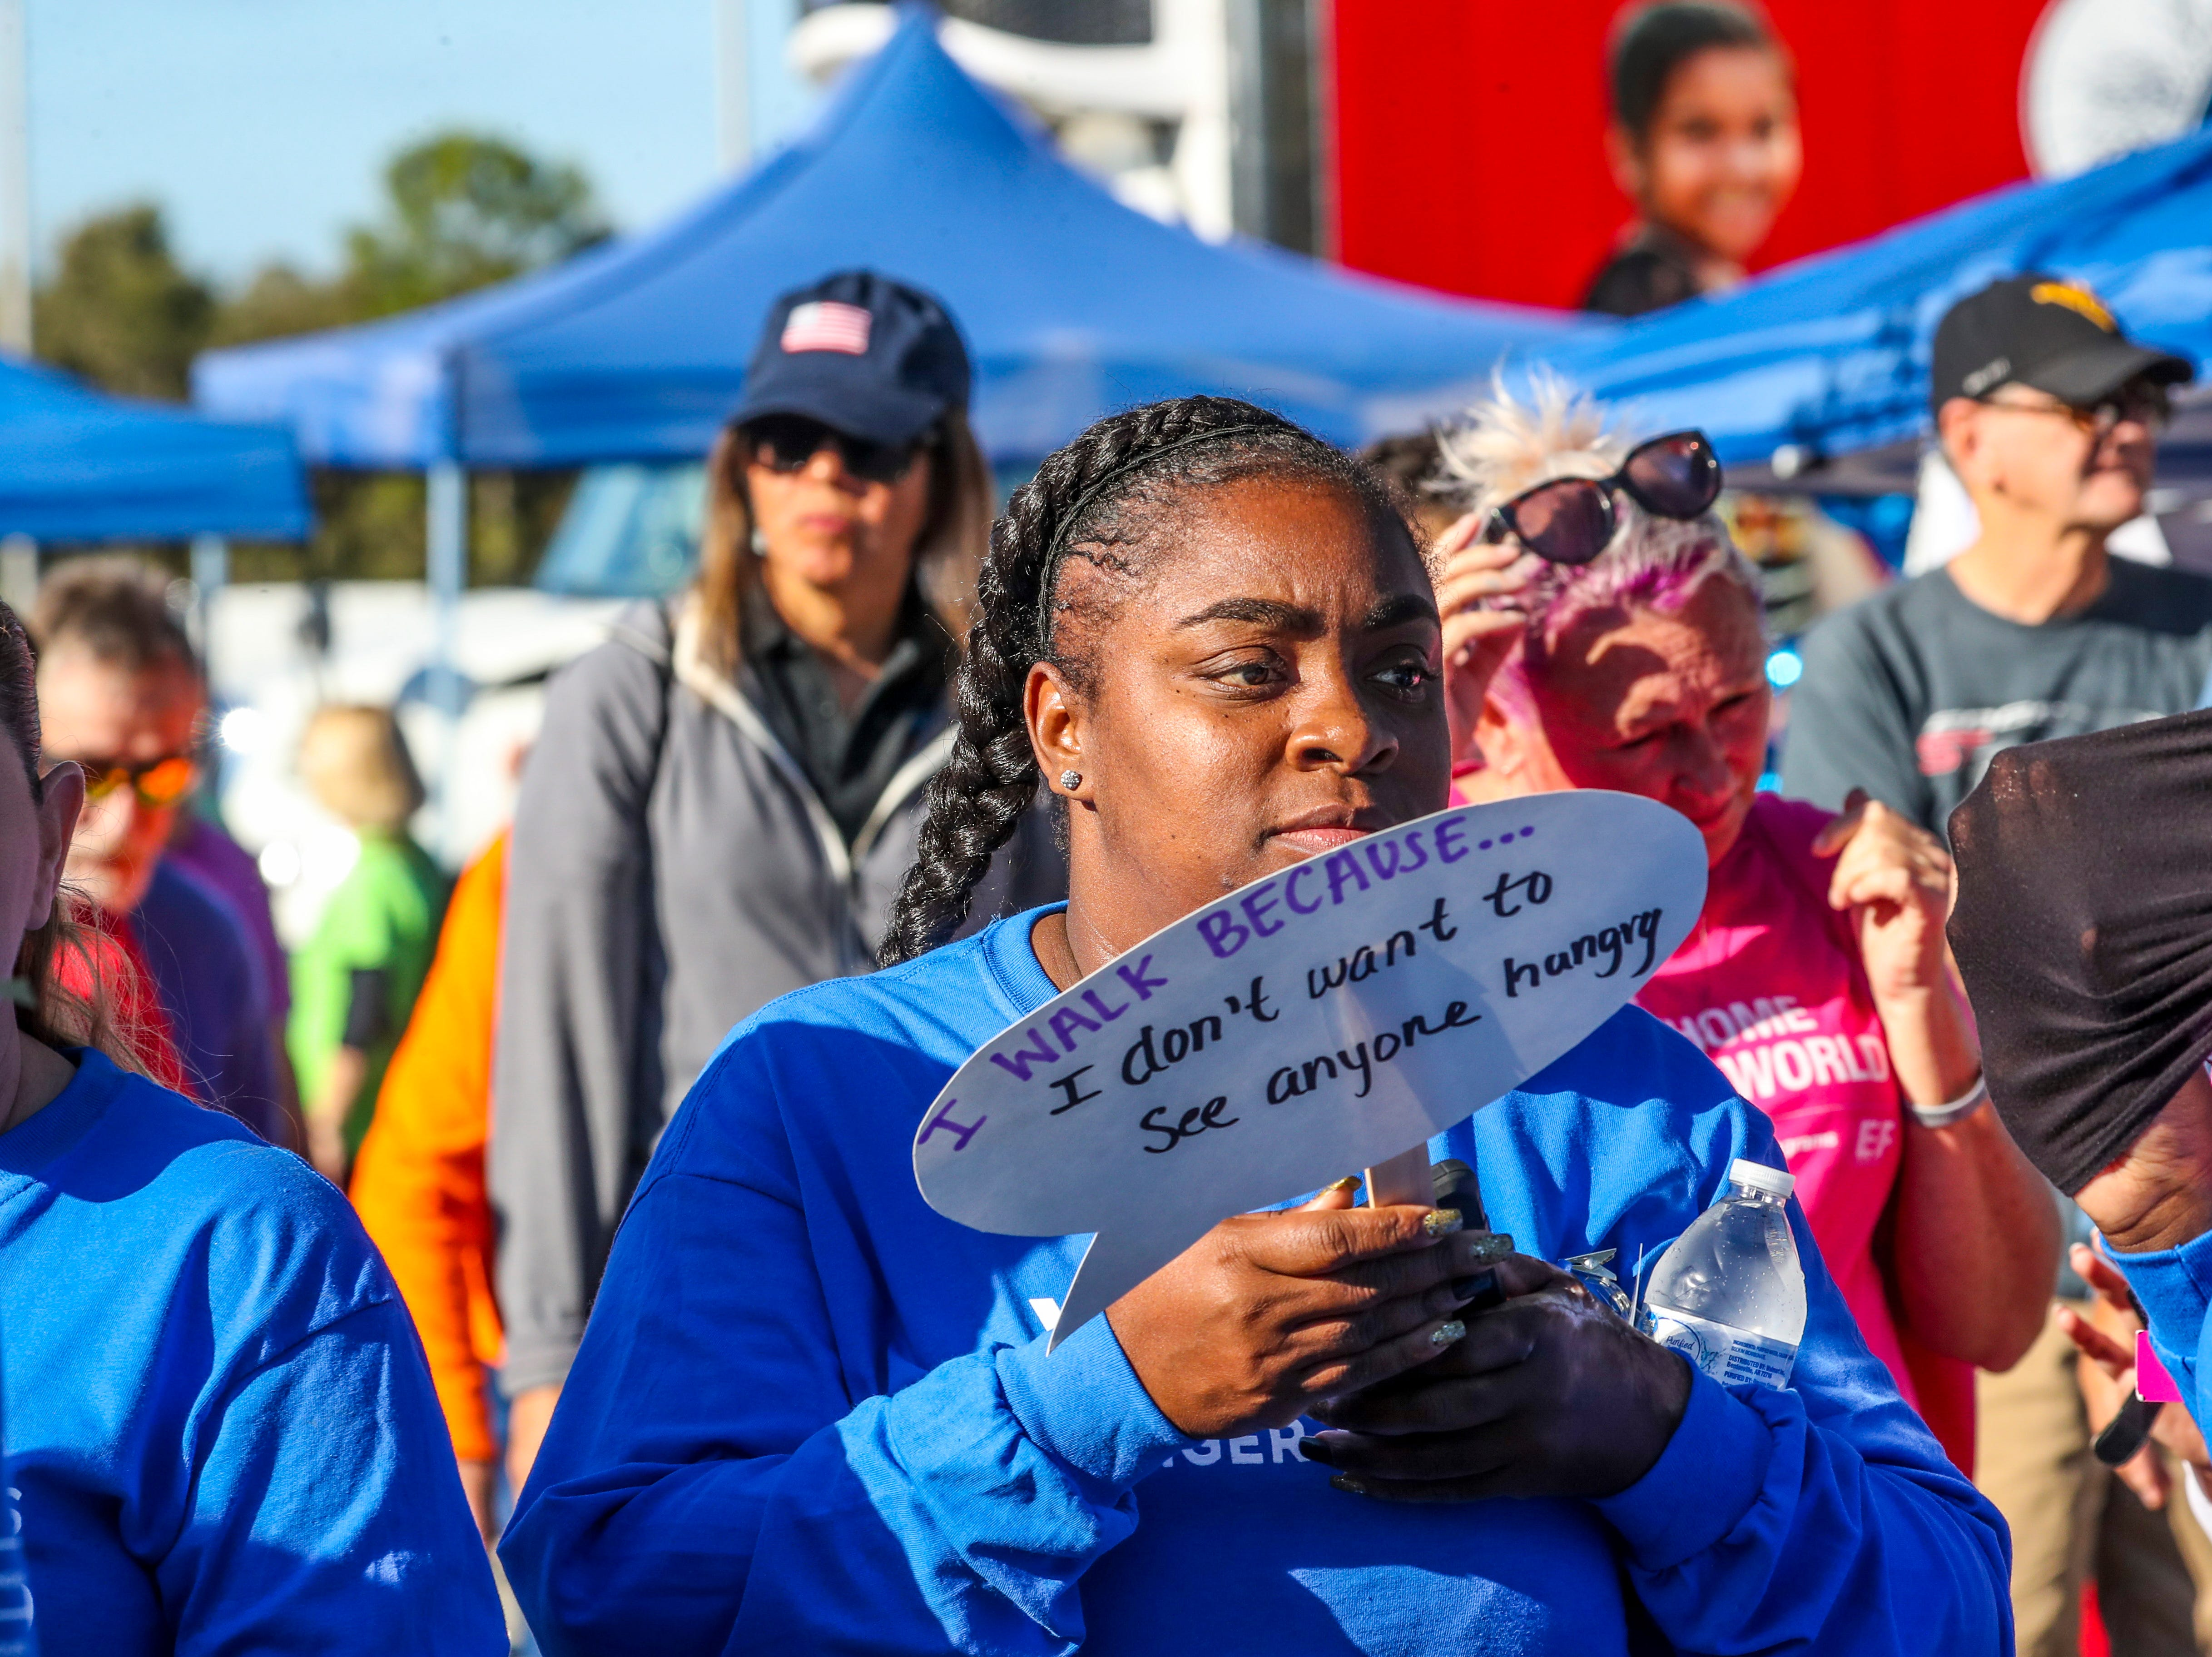 The 11th annual WINK Feeds Family hunger walk that supports the Harry Chapin Food Bank of Southwest Florida went off Saturday, January 19, 2019. The walk was held at Miromar Outlets in Estero, FL, and they did a 2 mile walk around the mall. The Hunger Walk raises a preliminary $212,000 for the Harry Chapin Food Bank. The Hunger Walk raises a preliminary $212,000 for the Harry Chapin Food Bank.